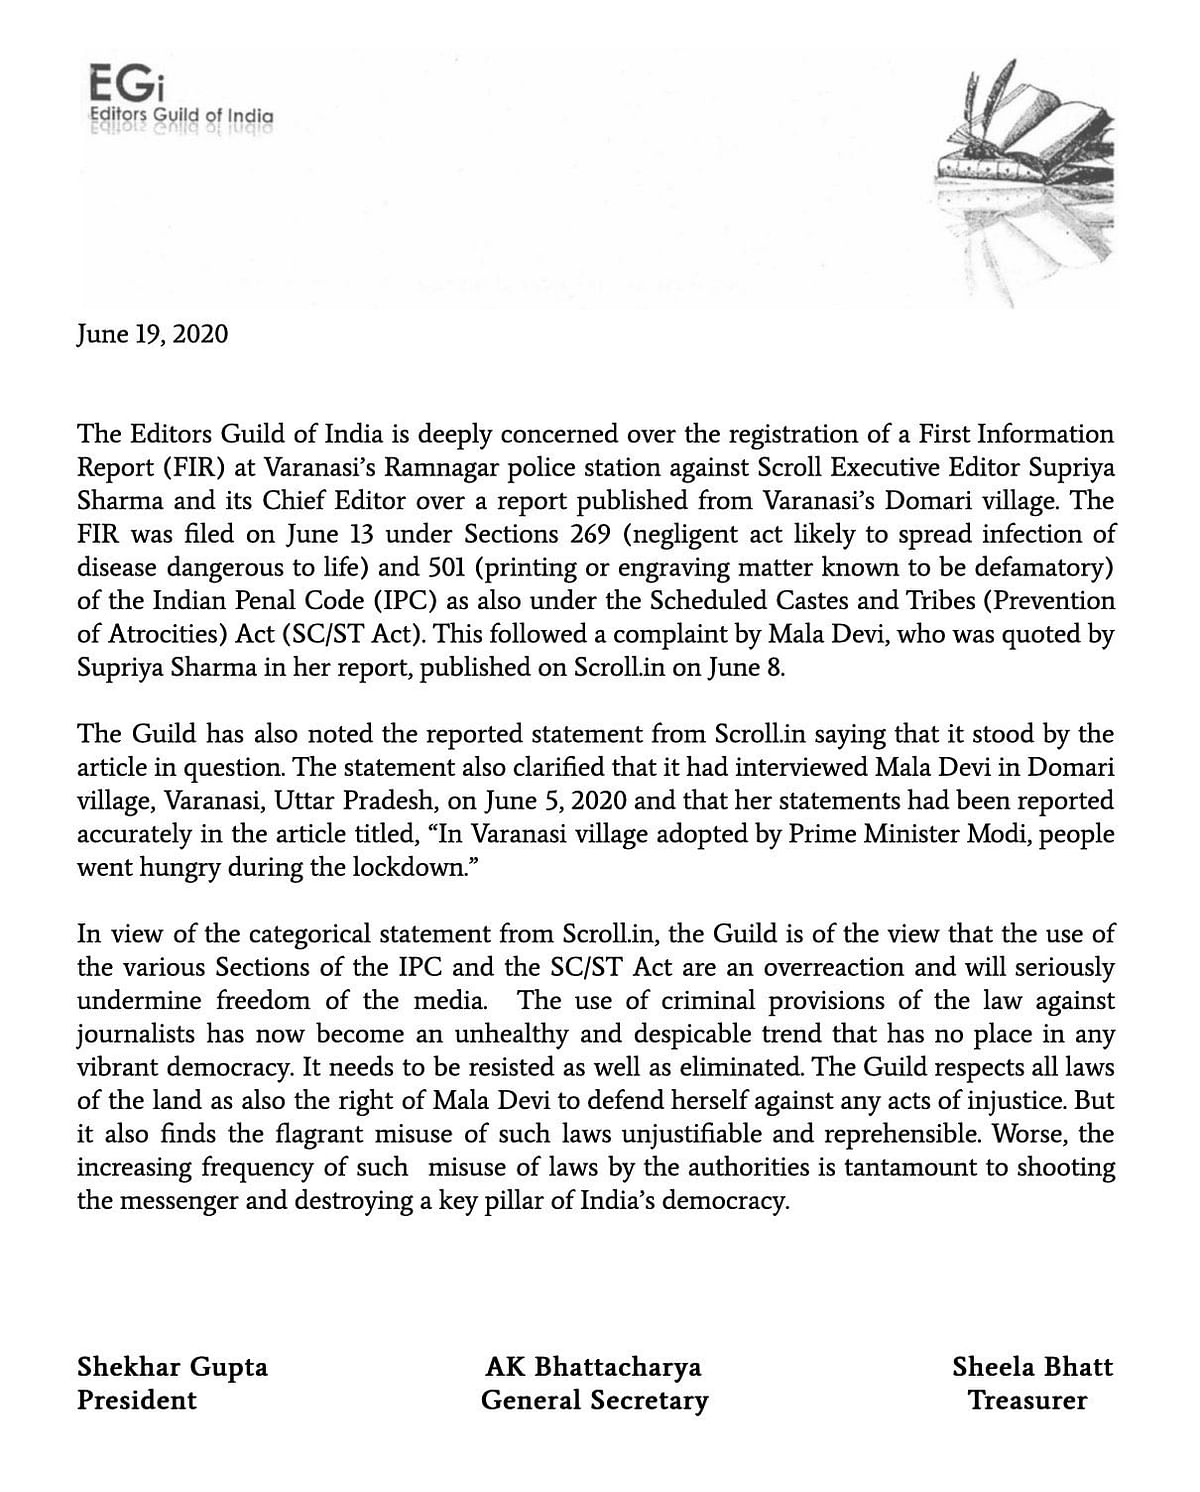 Statement by Editors Guild of India